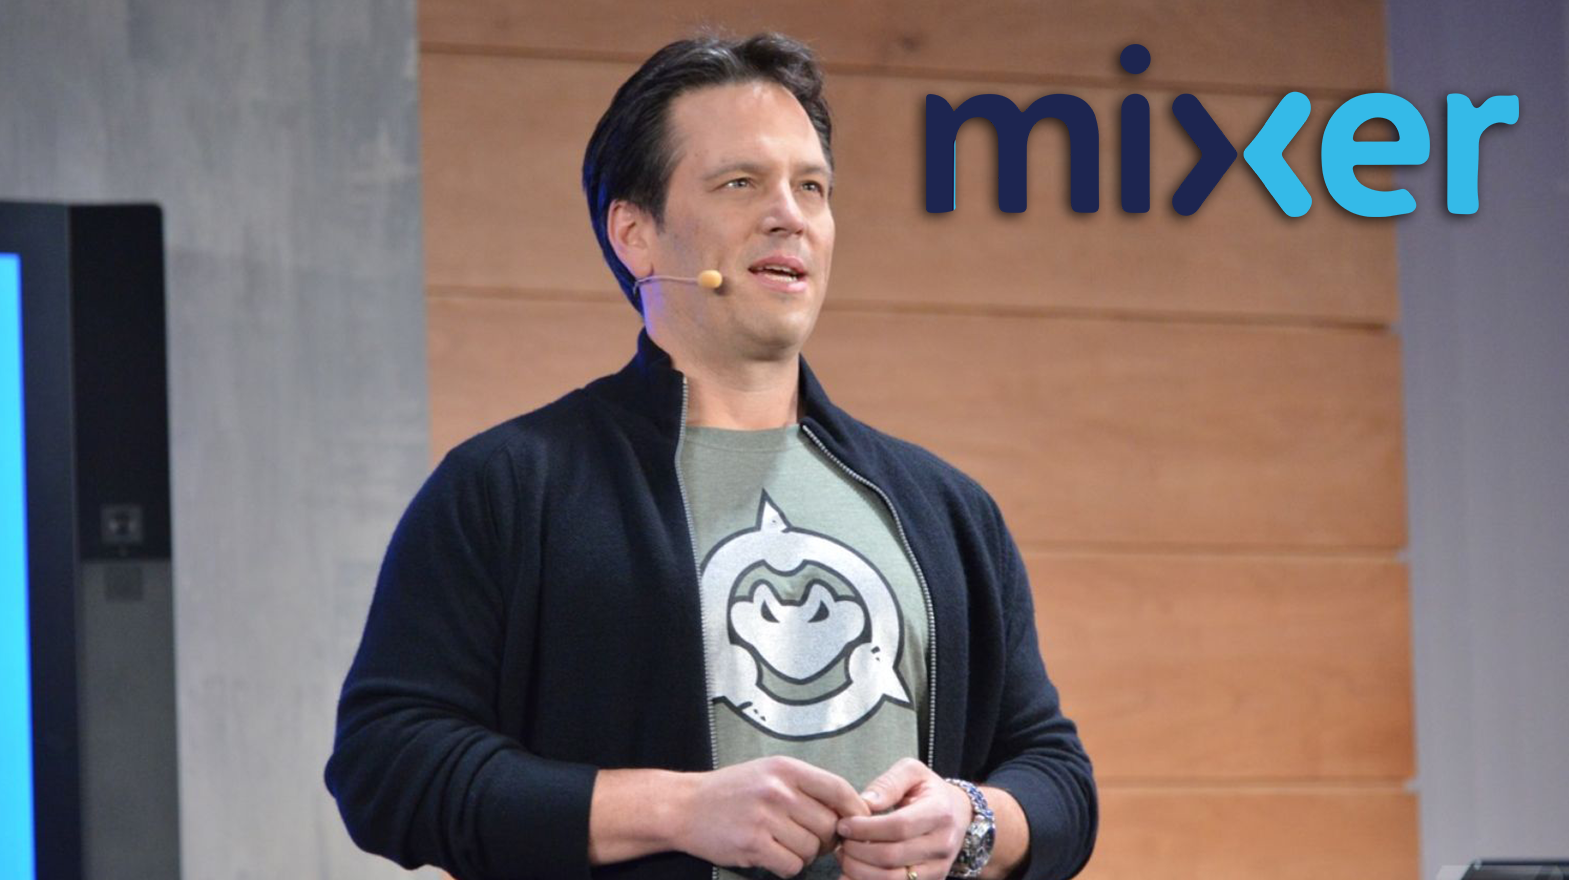 Phil Spencer keynote with mixer logo